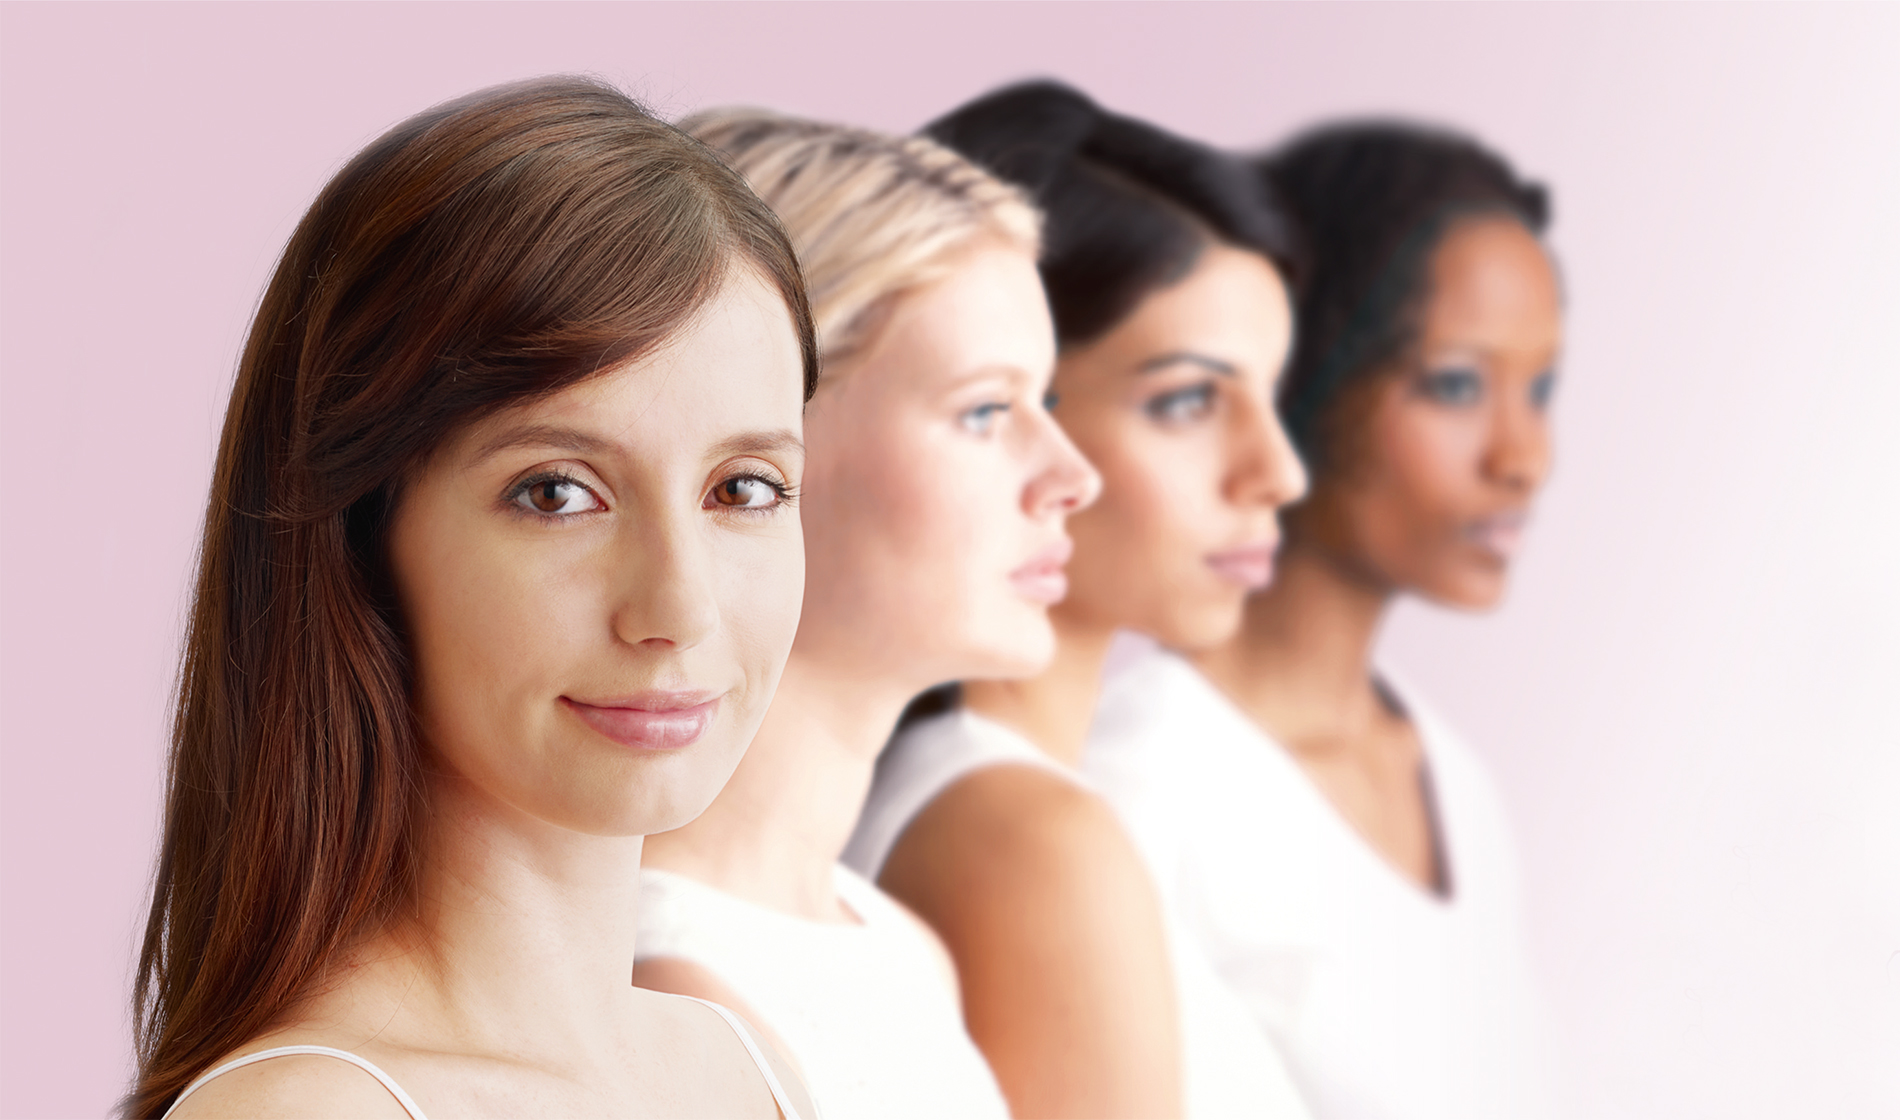 [photo] Four women with different colored hair standing next to each other in row